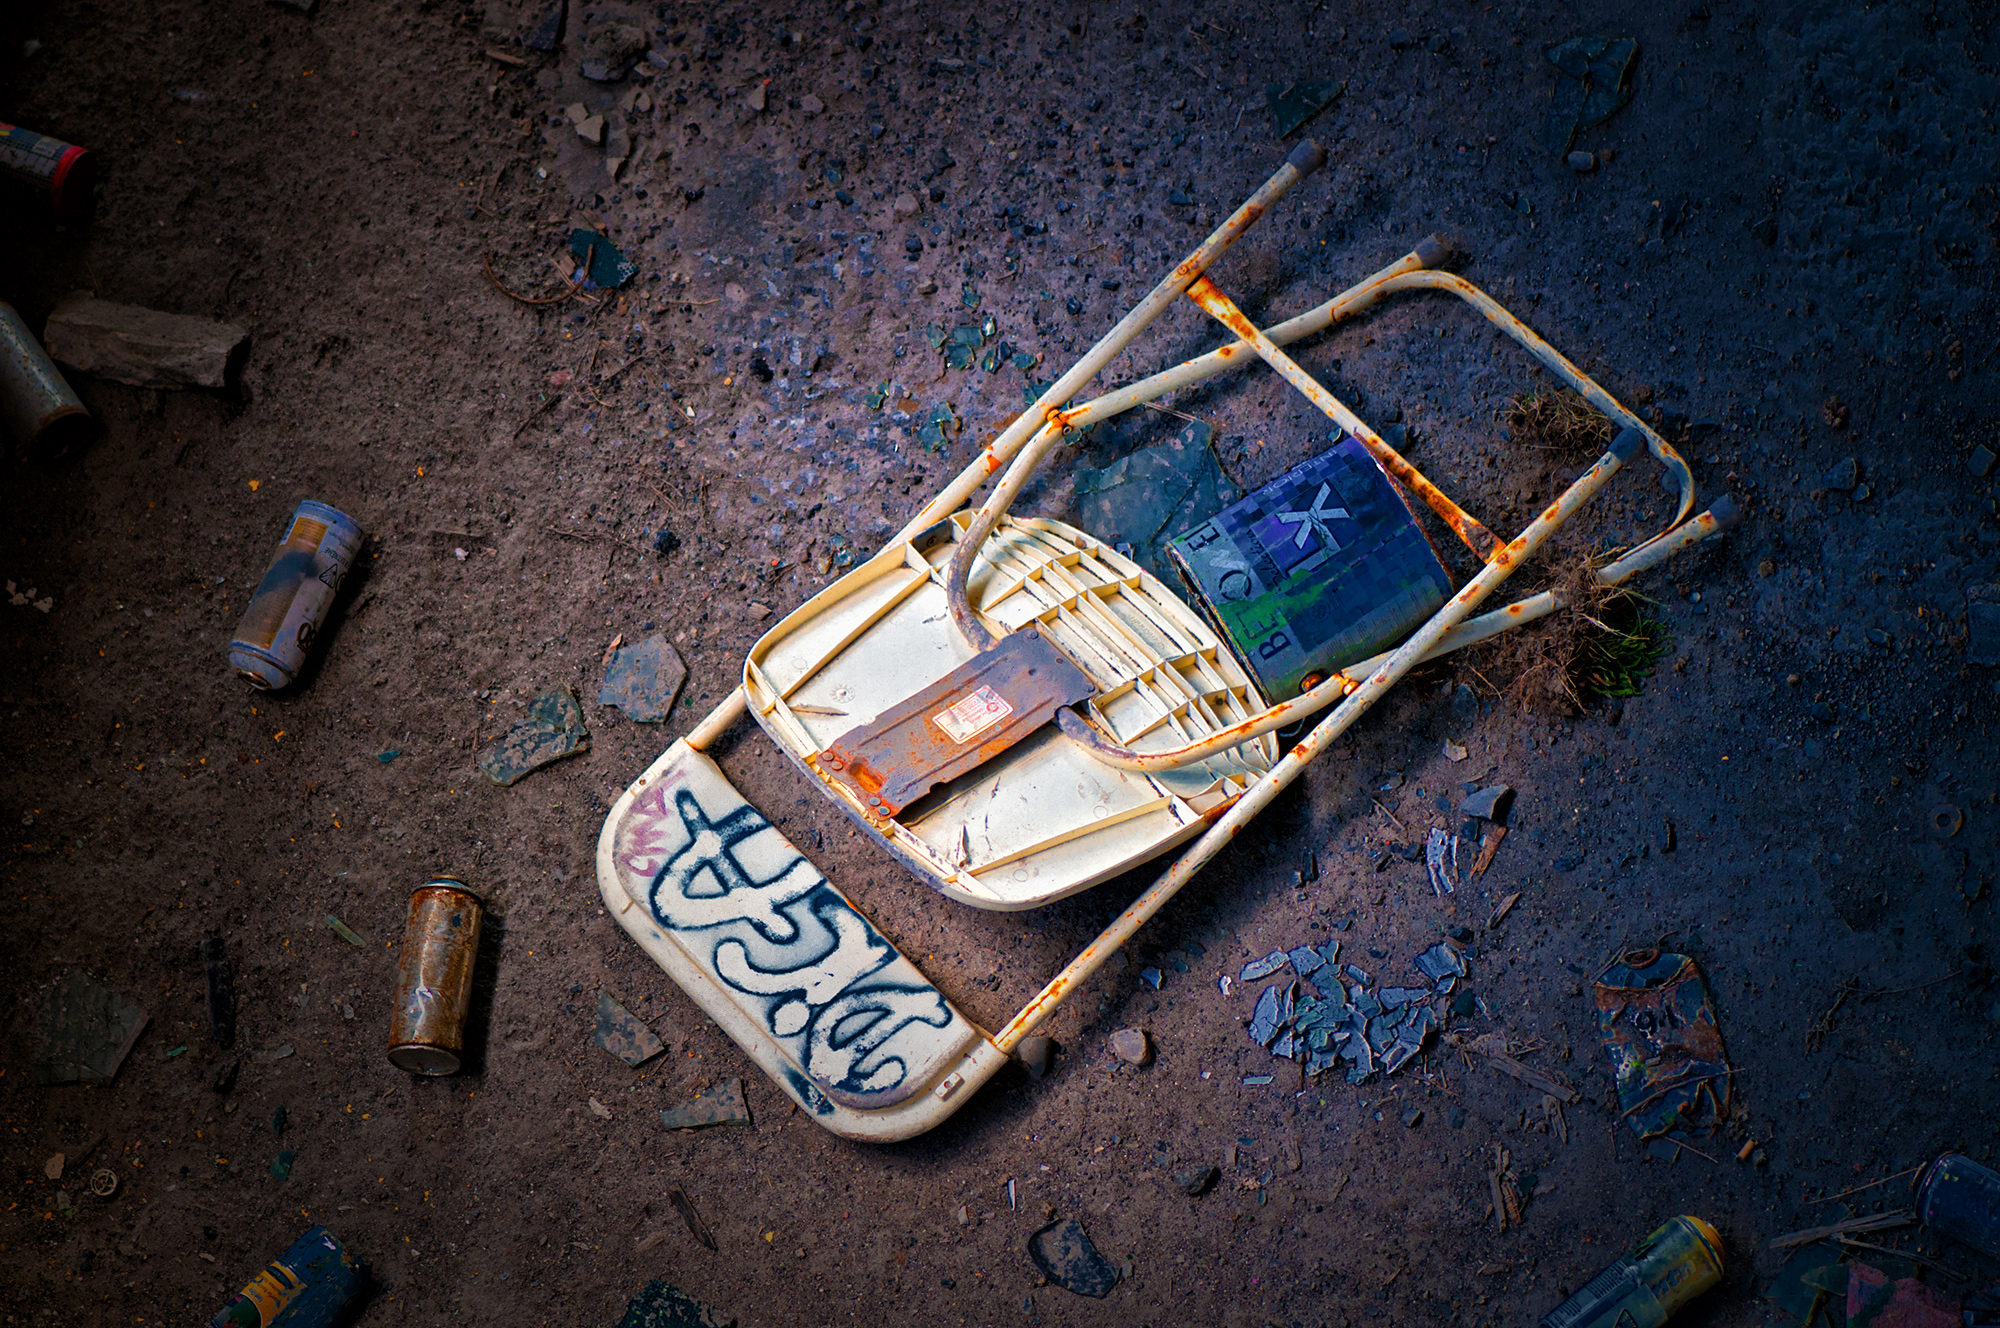 Trash littered an abandoned factory that is chock-full of graffiti. These elements left behind began telling stories.